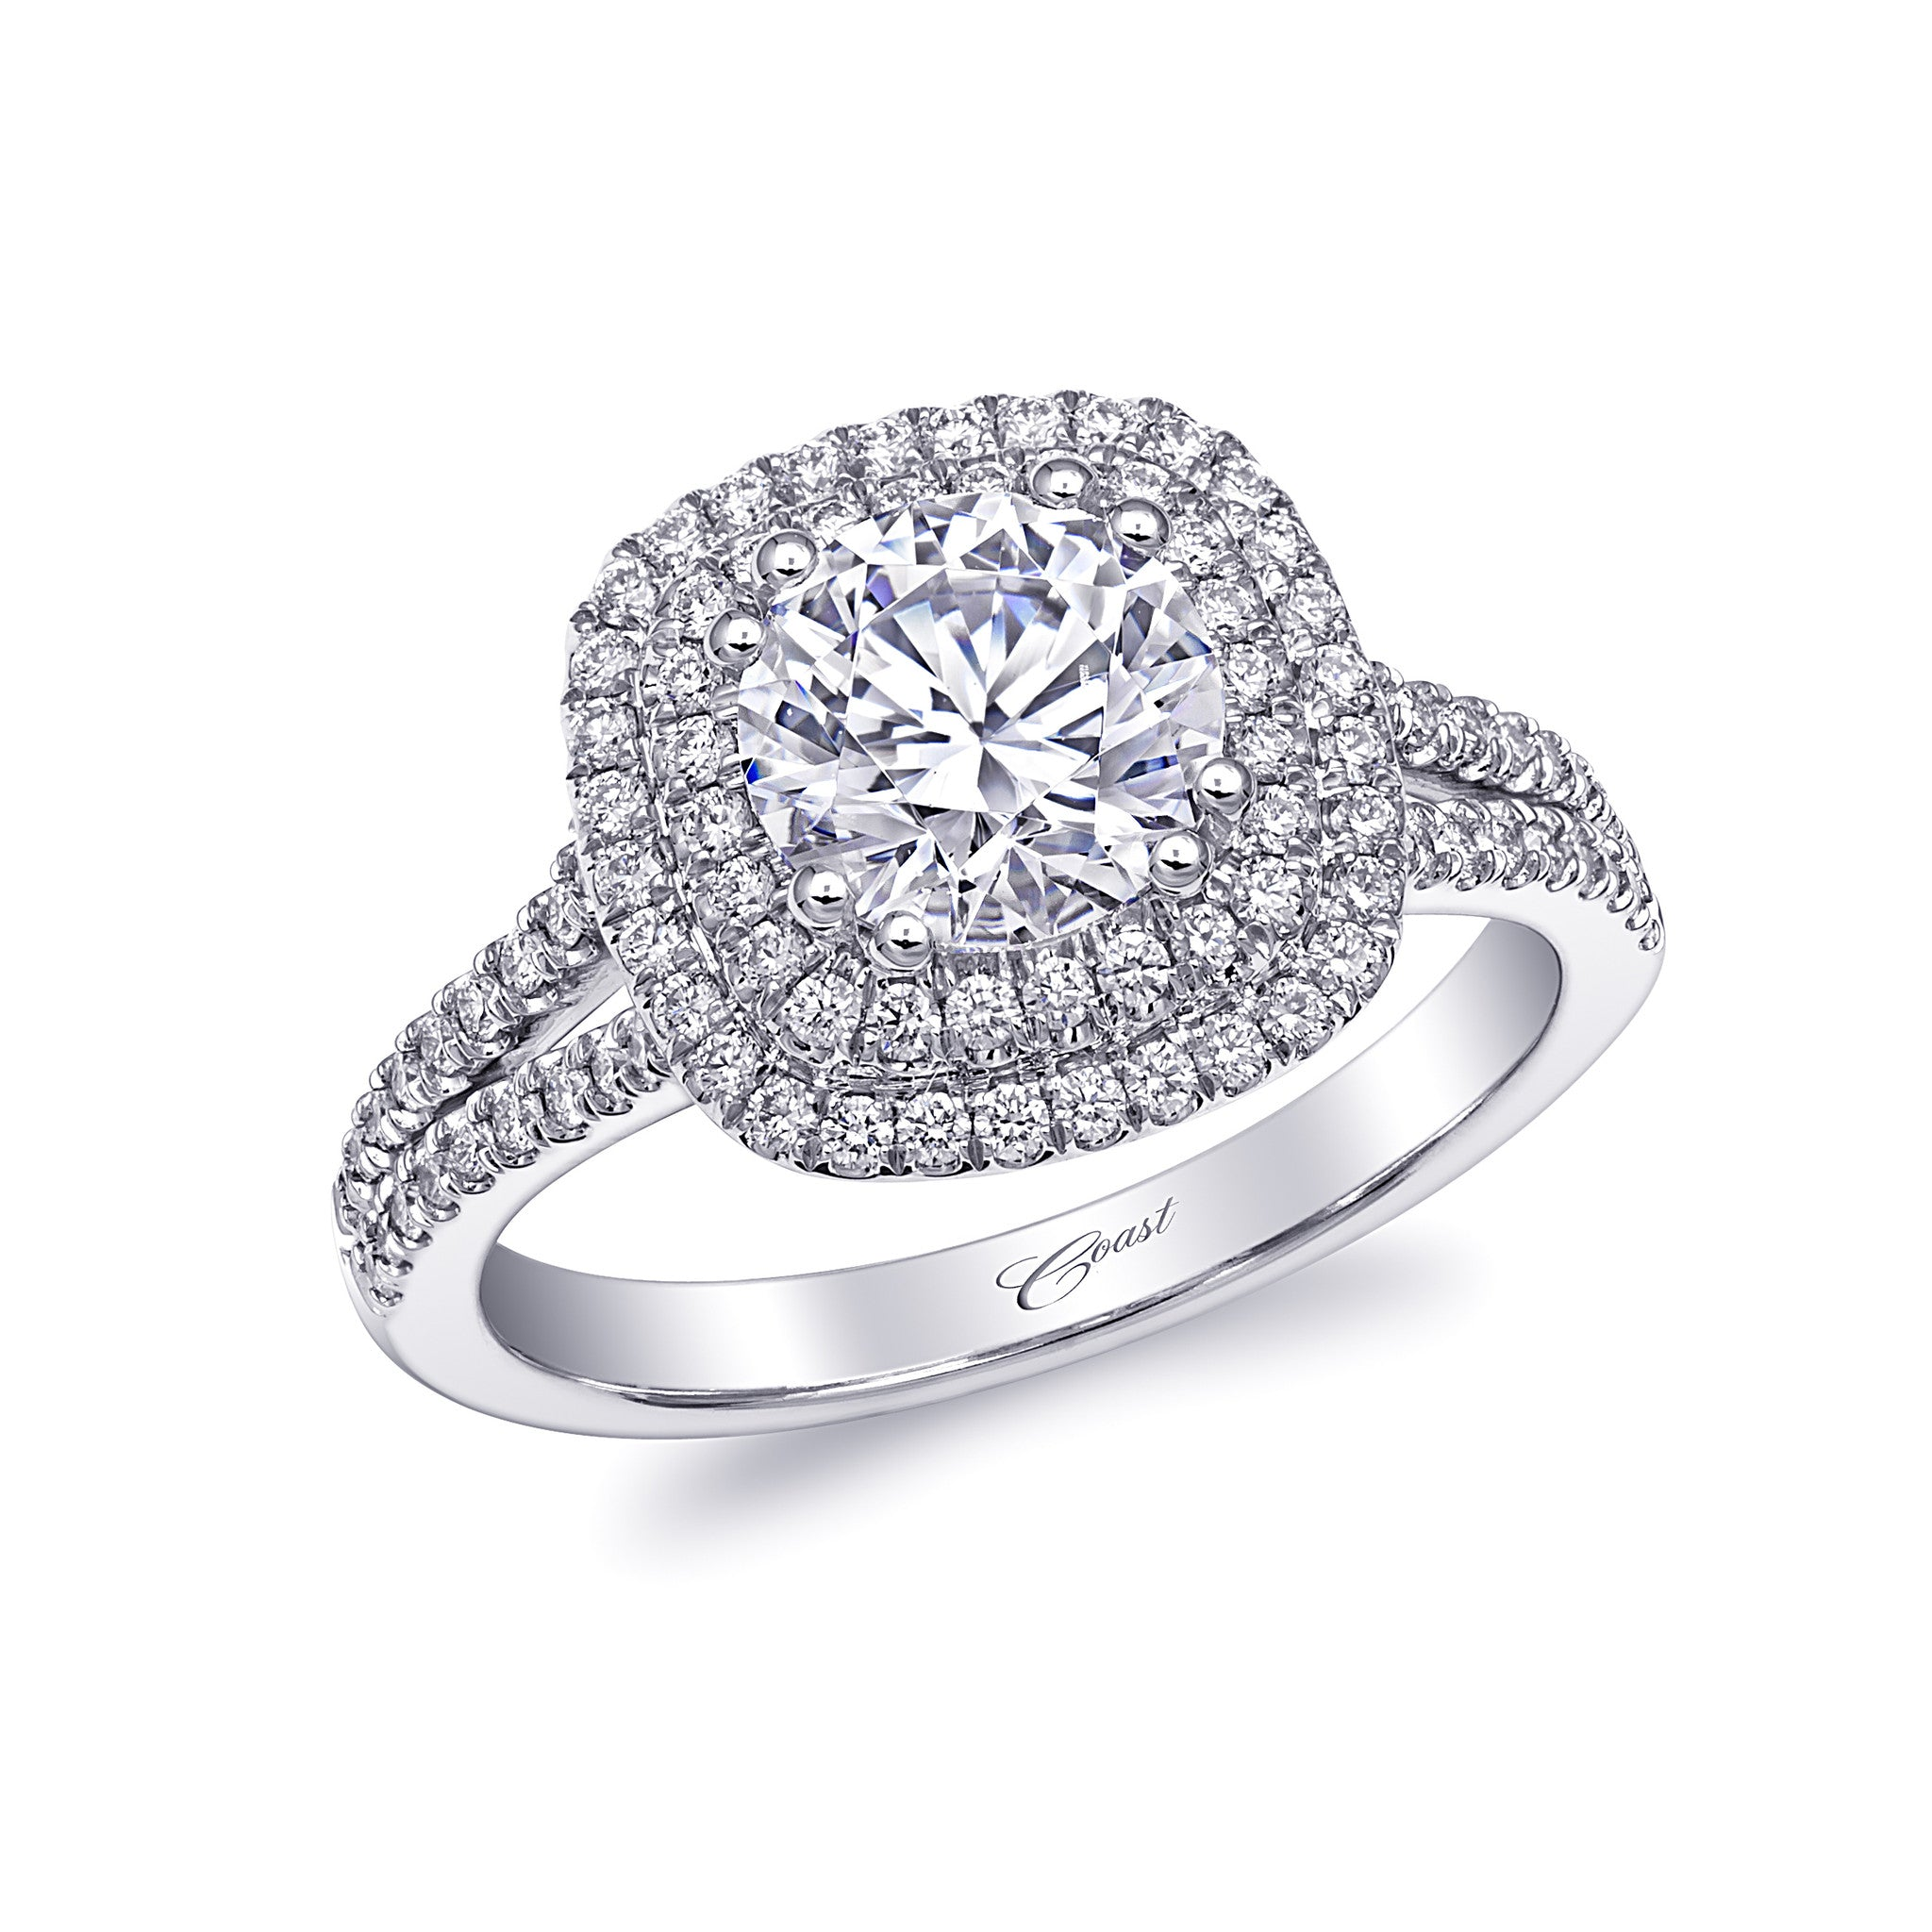 ron with illusion sweet idc engagement kay rizzo shop solitaire slight stone rings scott